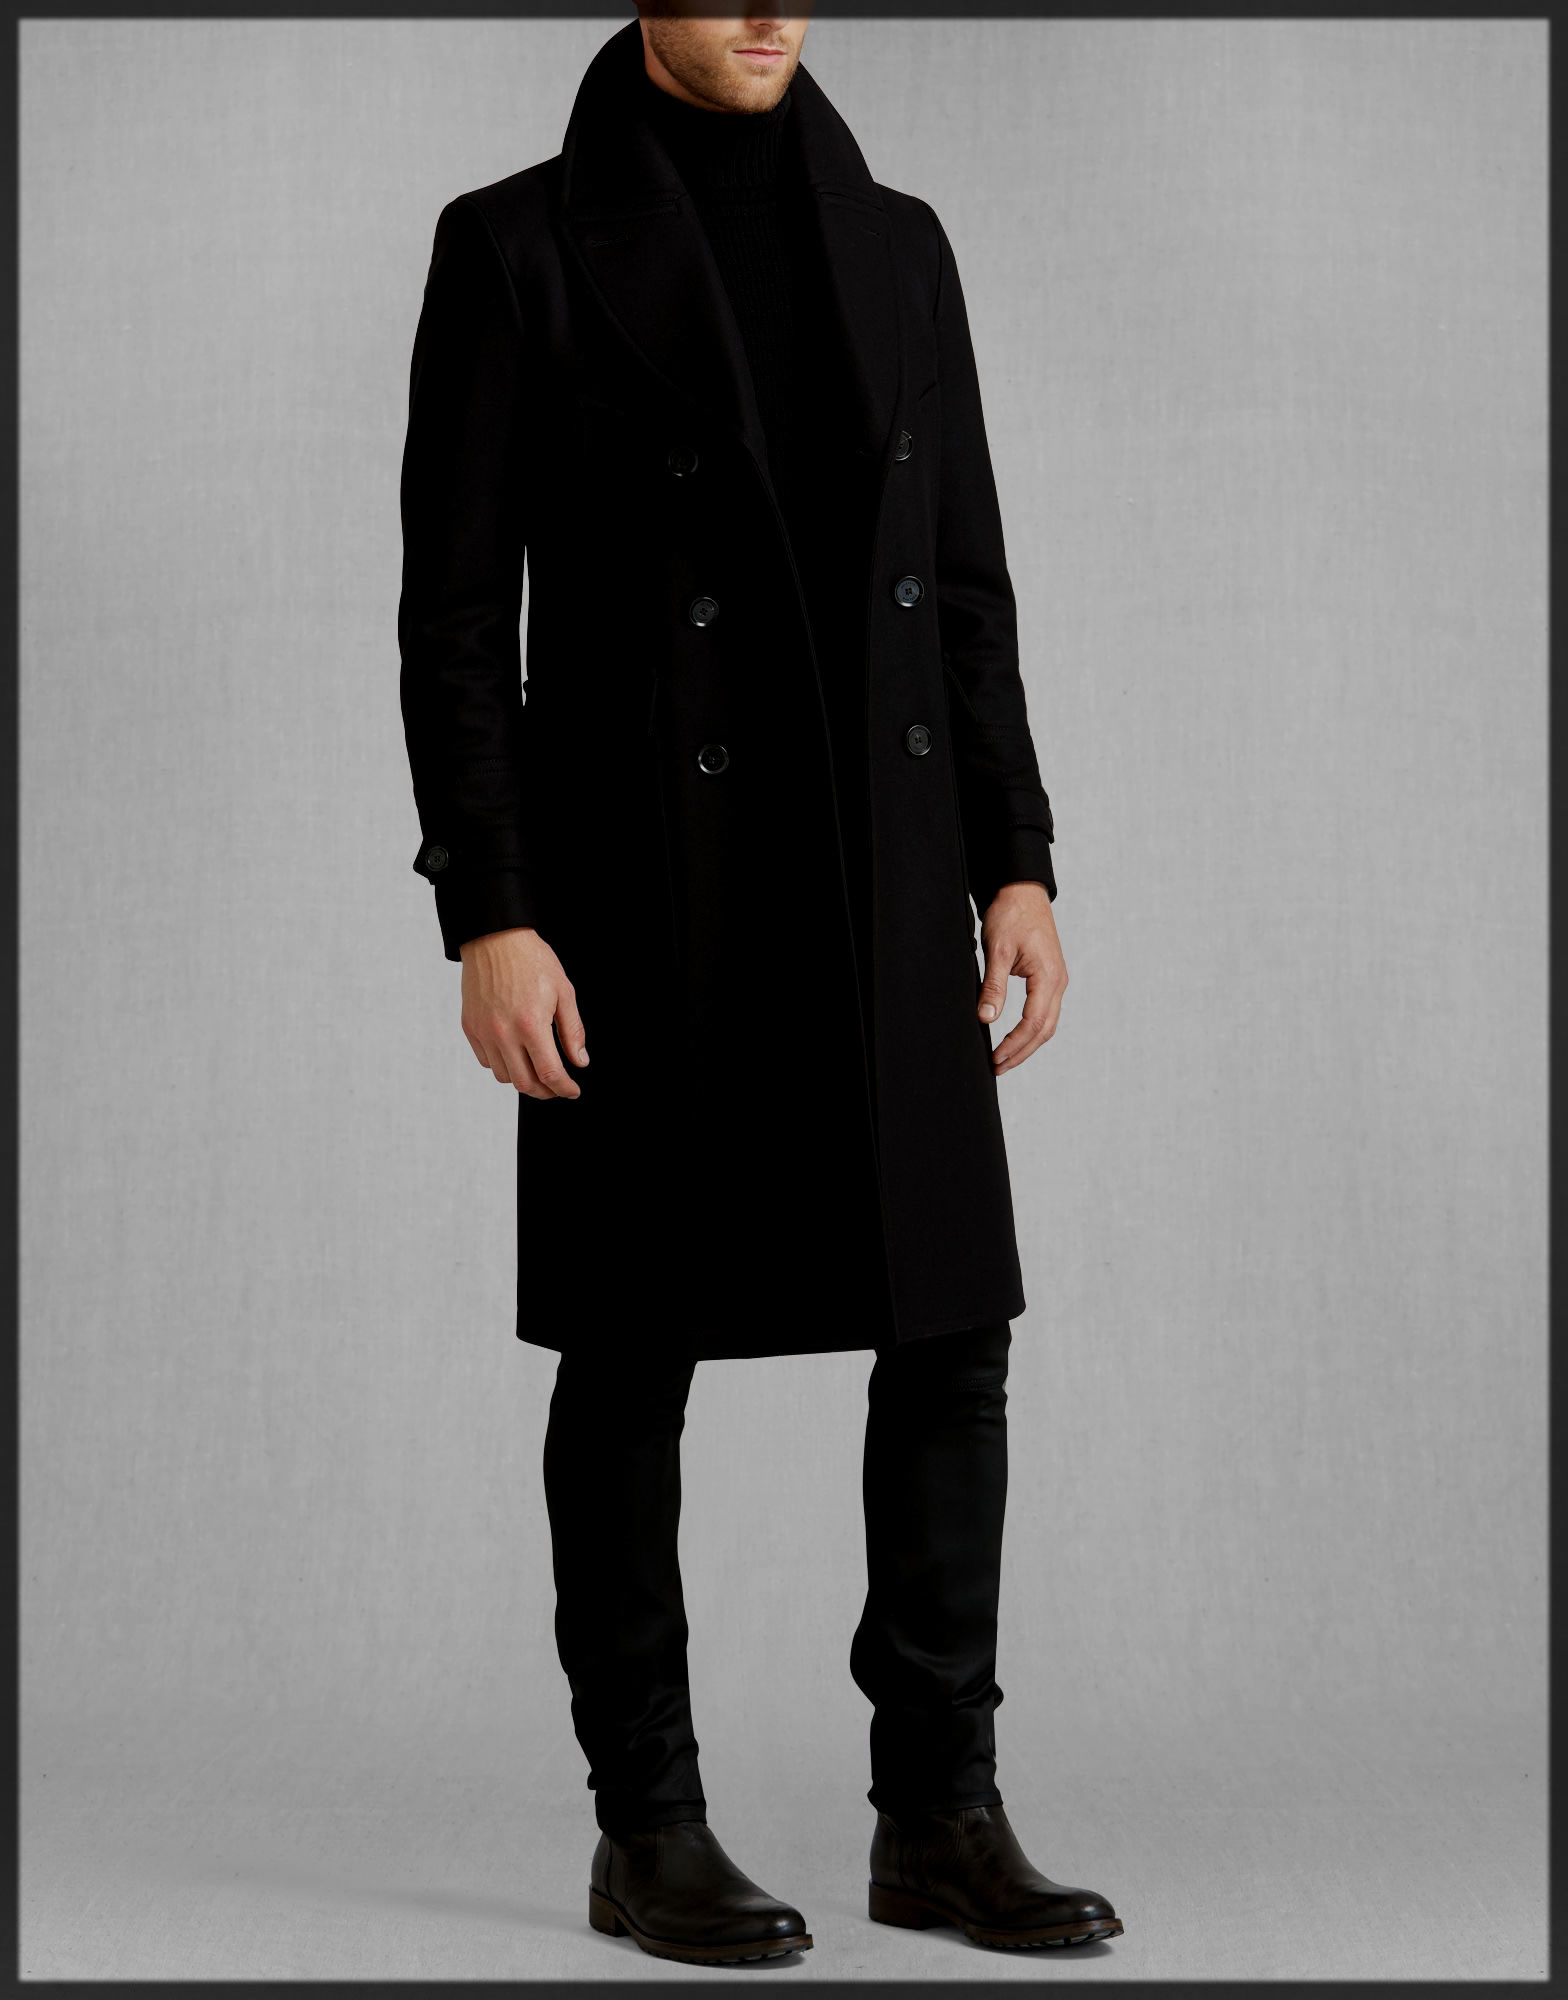 Classy Winter Trench Coats for Men